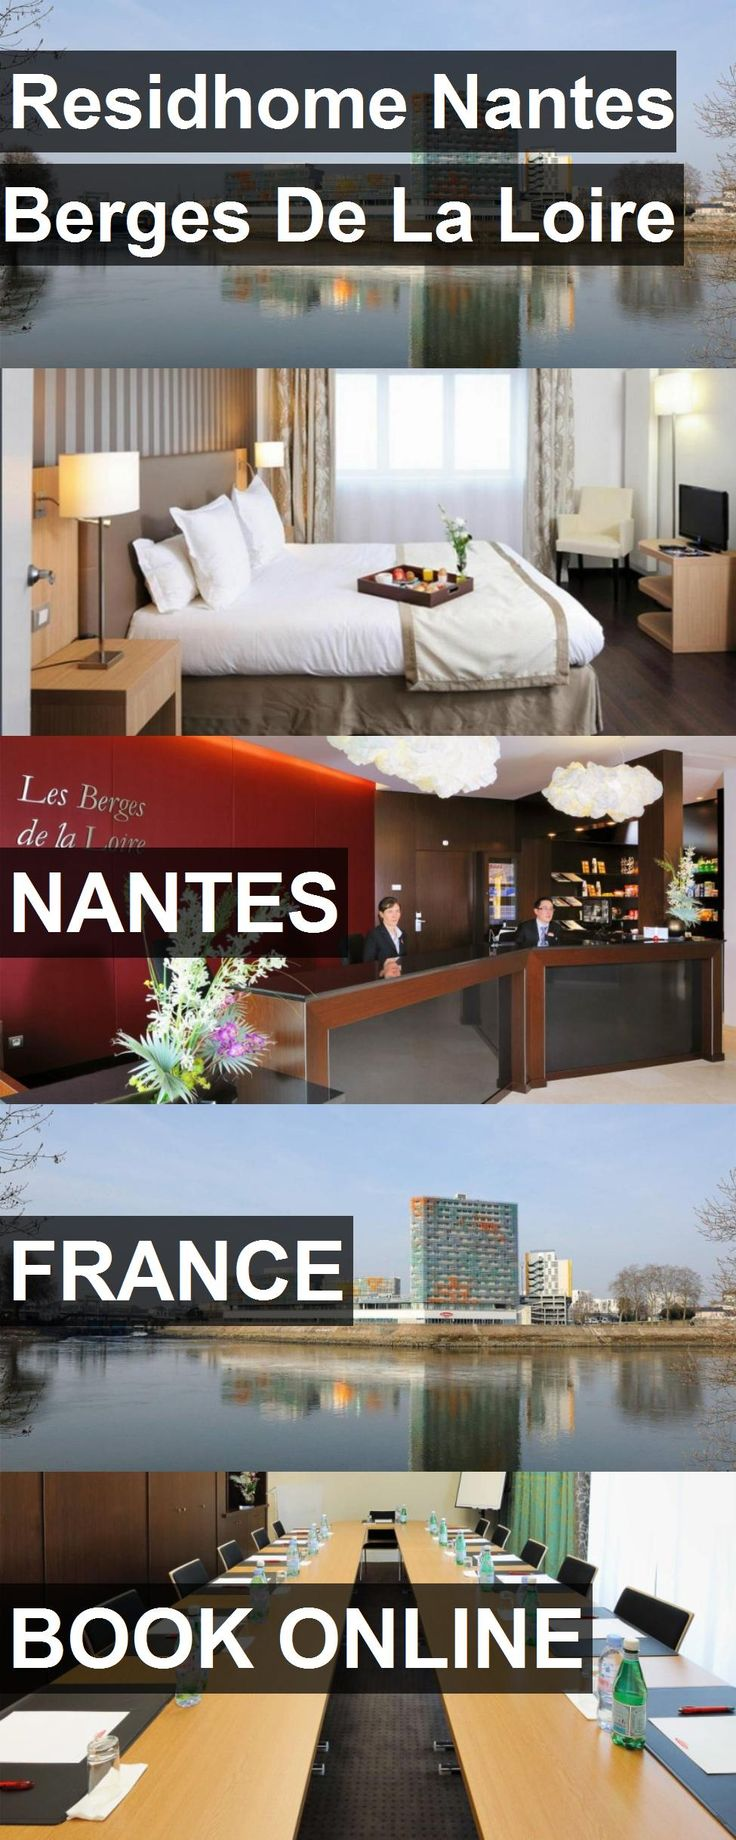 Hotel Residhome Nantes Berges De La Loire in Nantes, France. For more information, photos, reviews and best prices please follow the link. #France #Nantes #travel #vacation #hotel